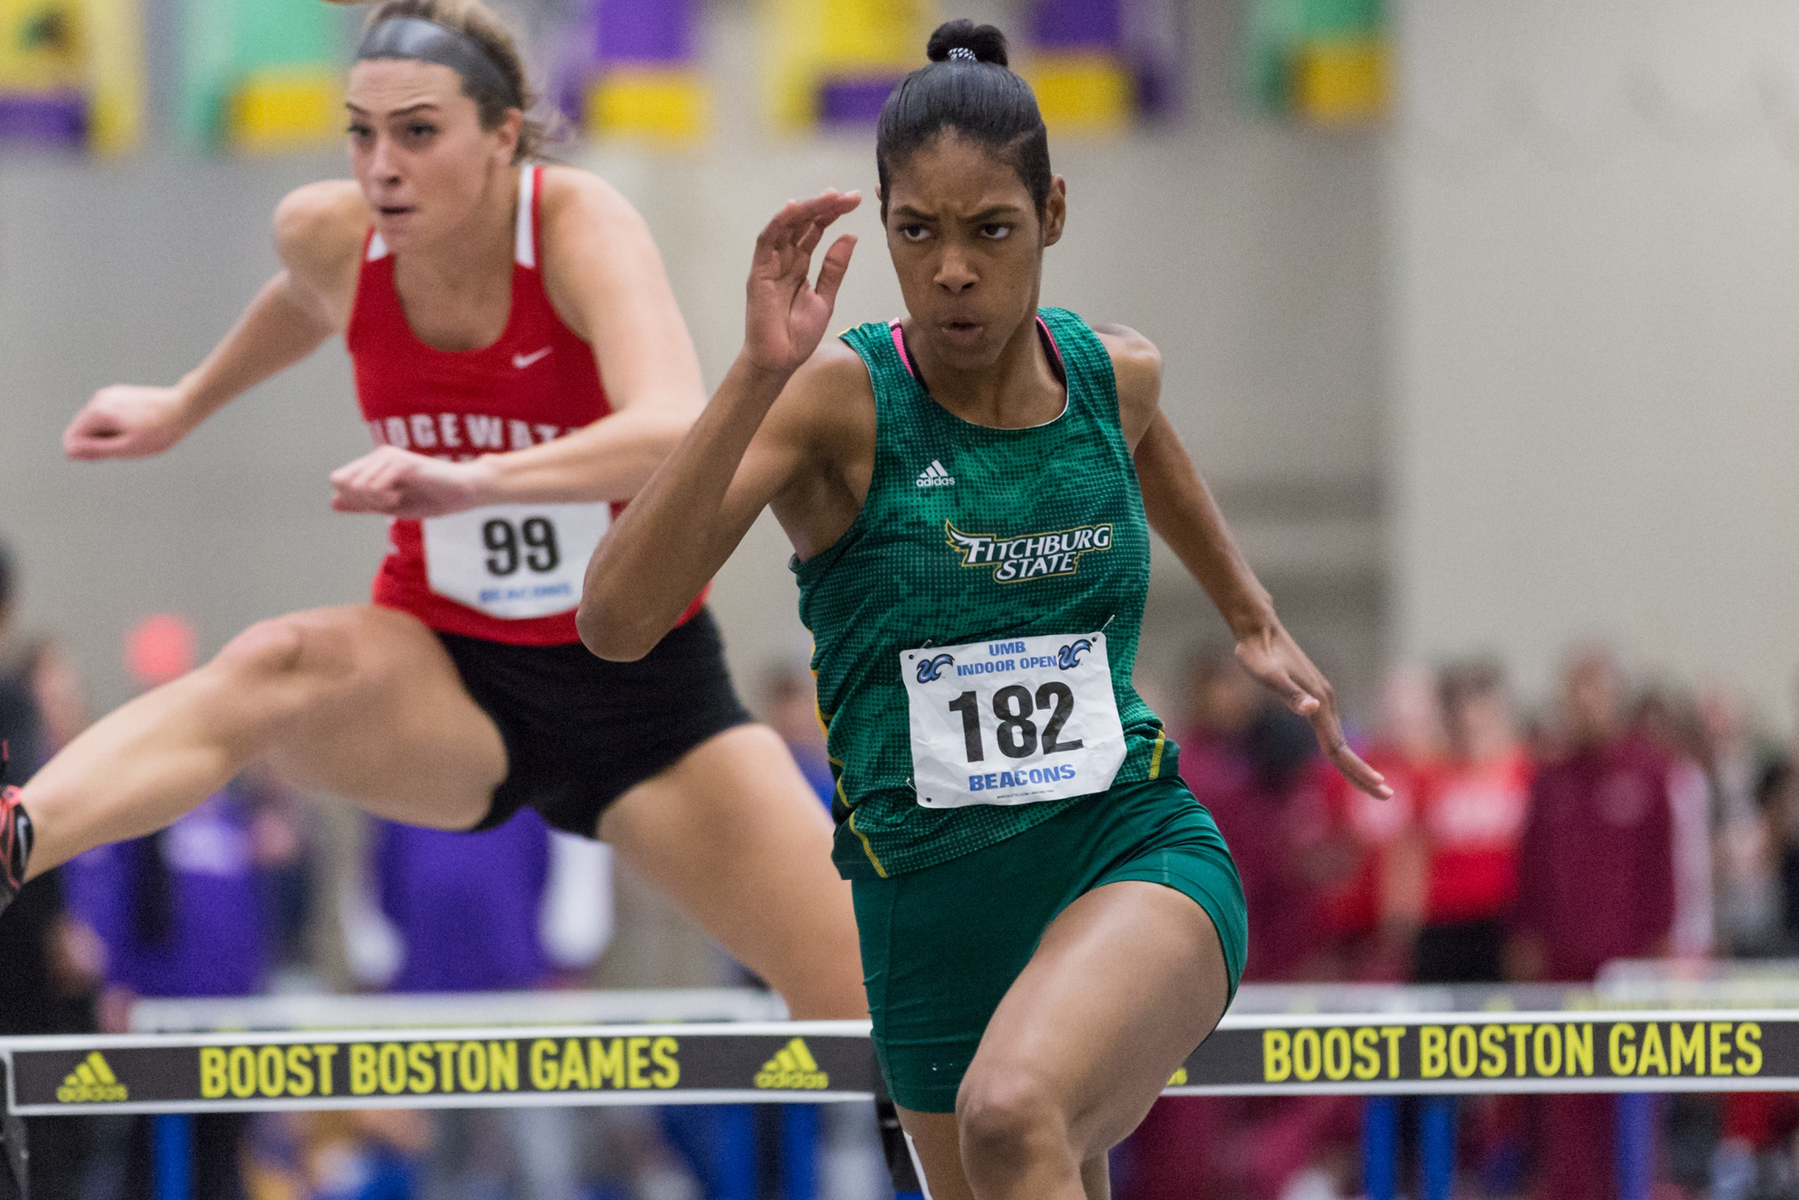 Fitchburg State Excels At Tufts Stampede